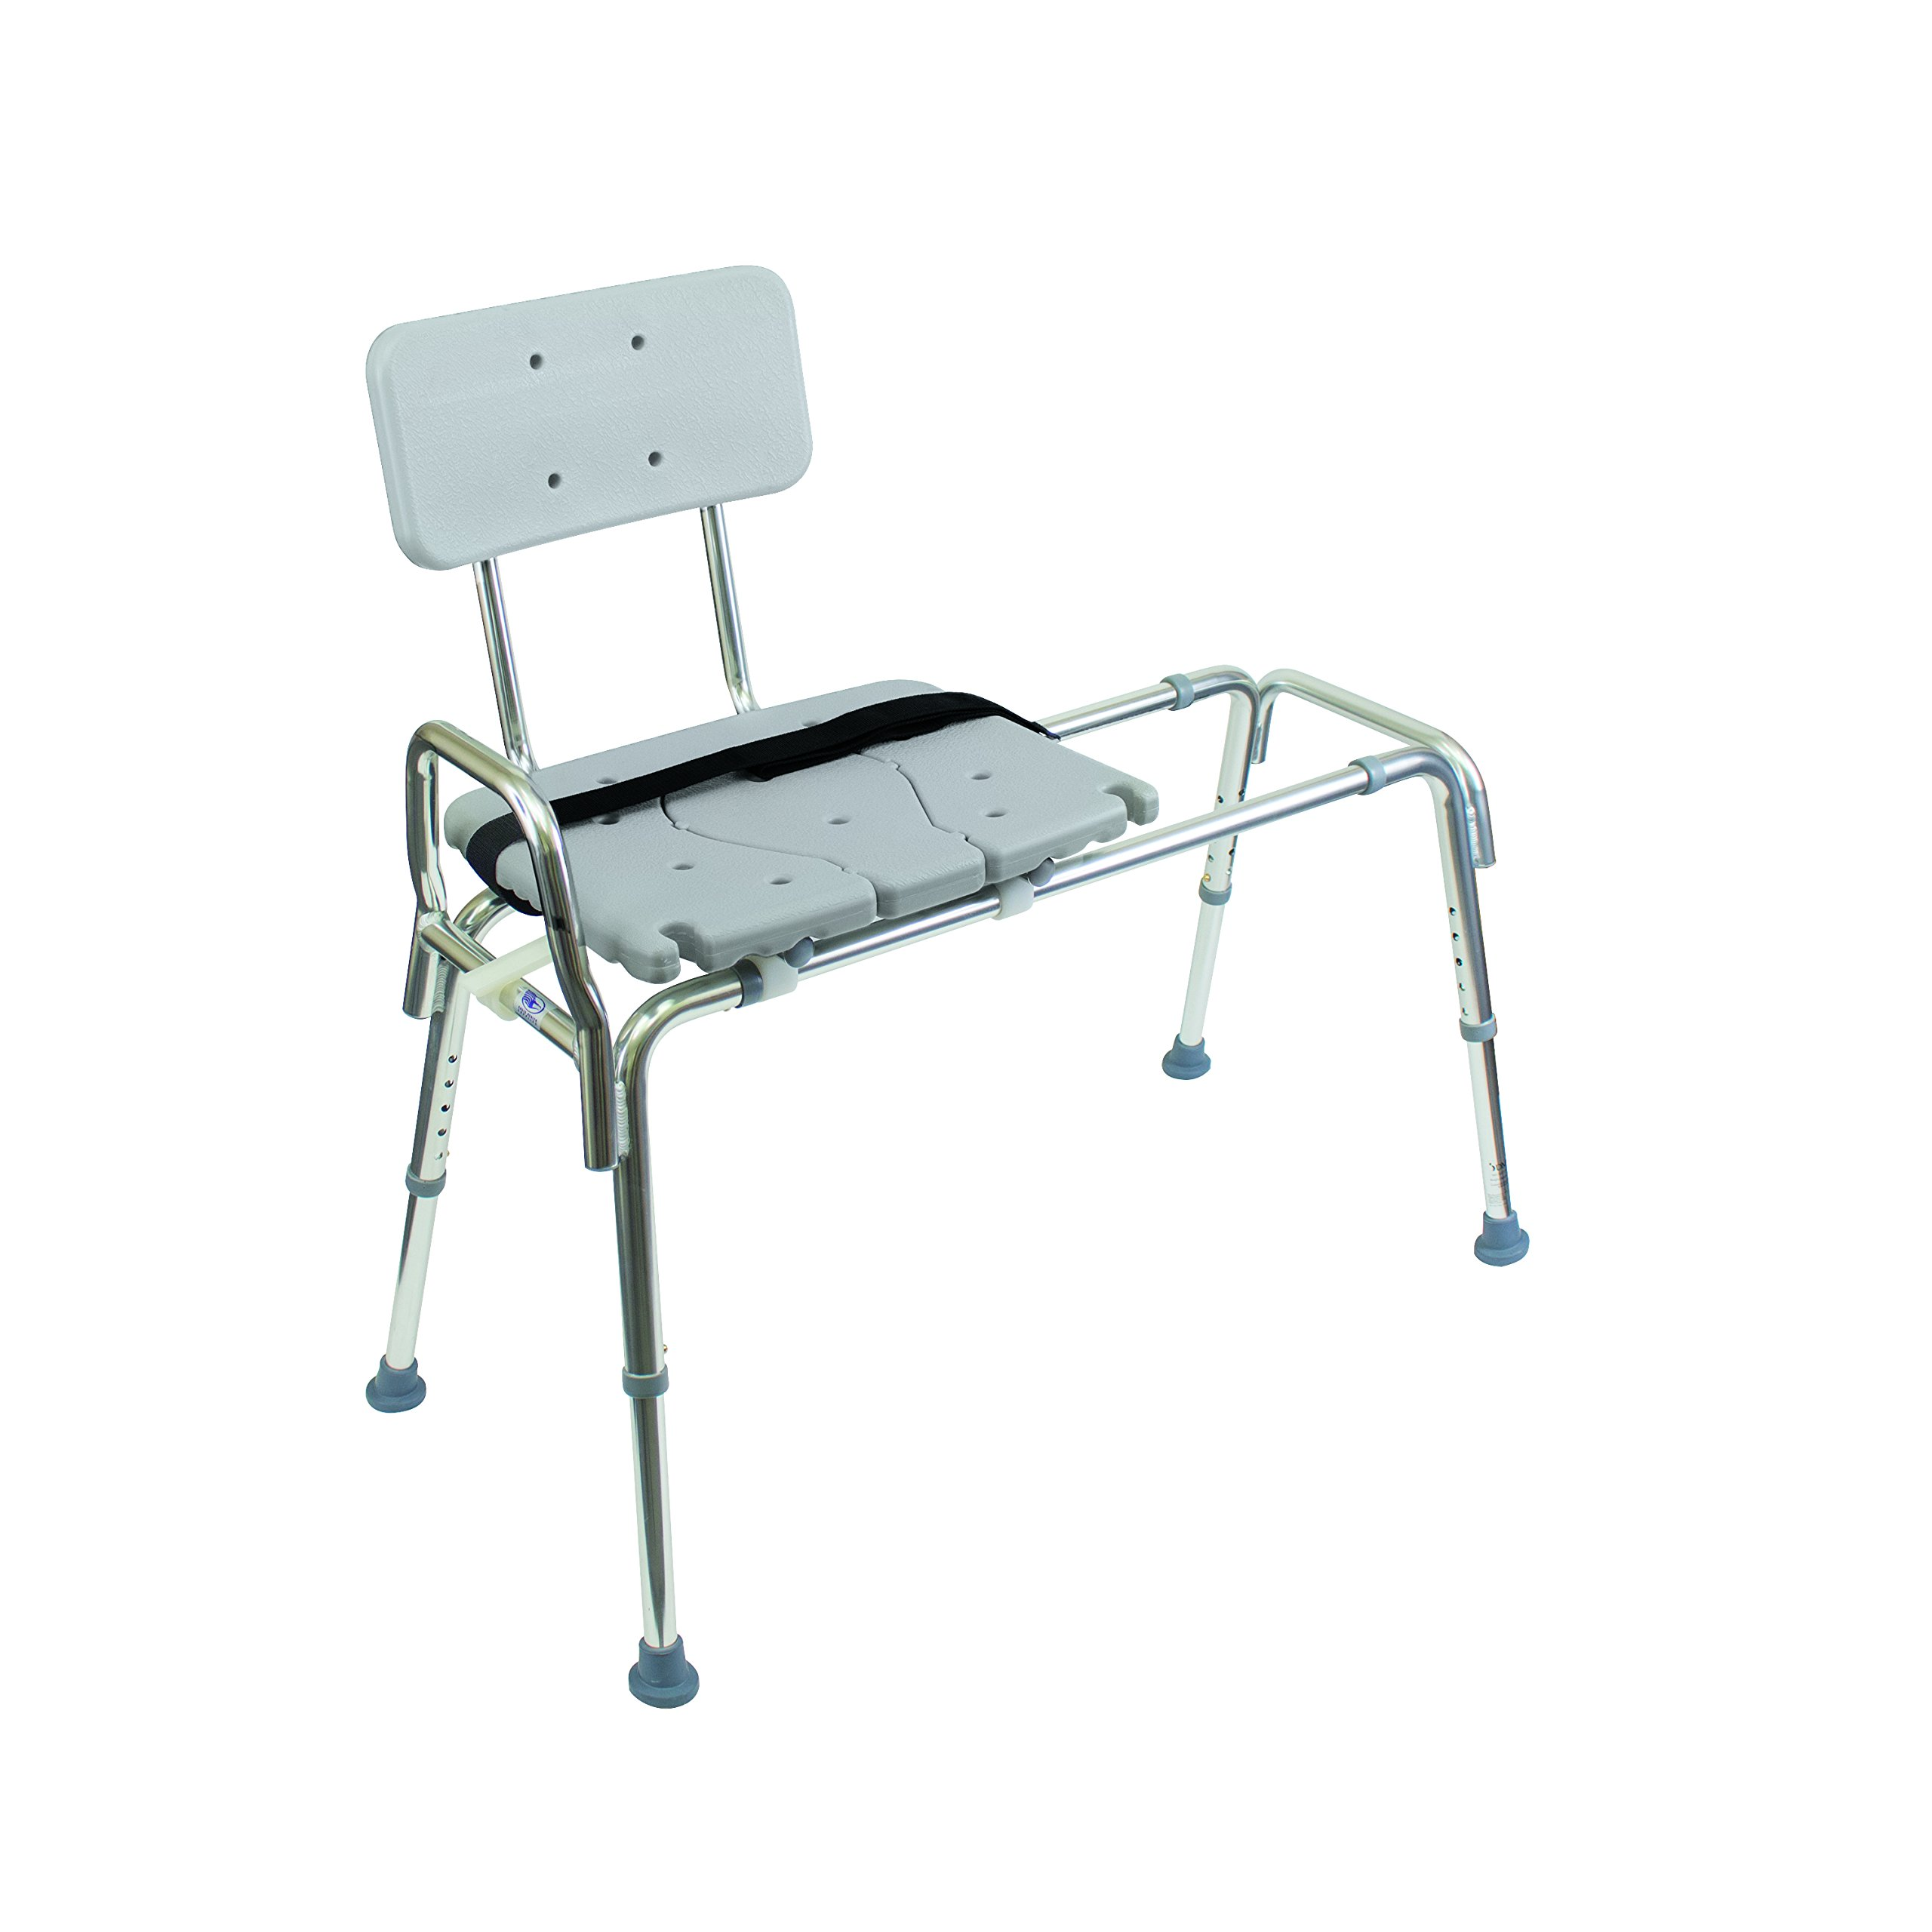 Duro med heavy duty sliding transfer bench shower chair with cut out seat and ebay Transfer bath bench